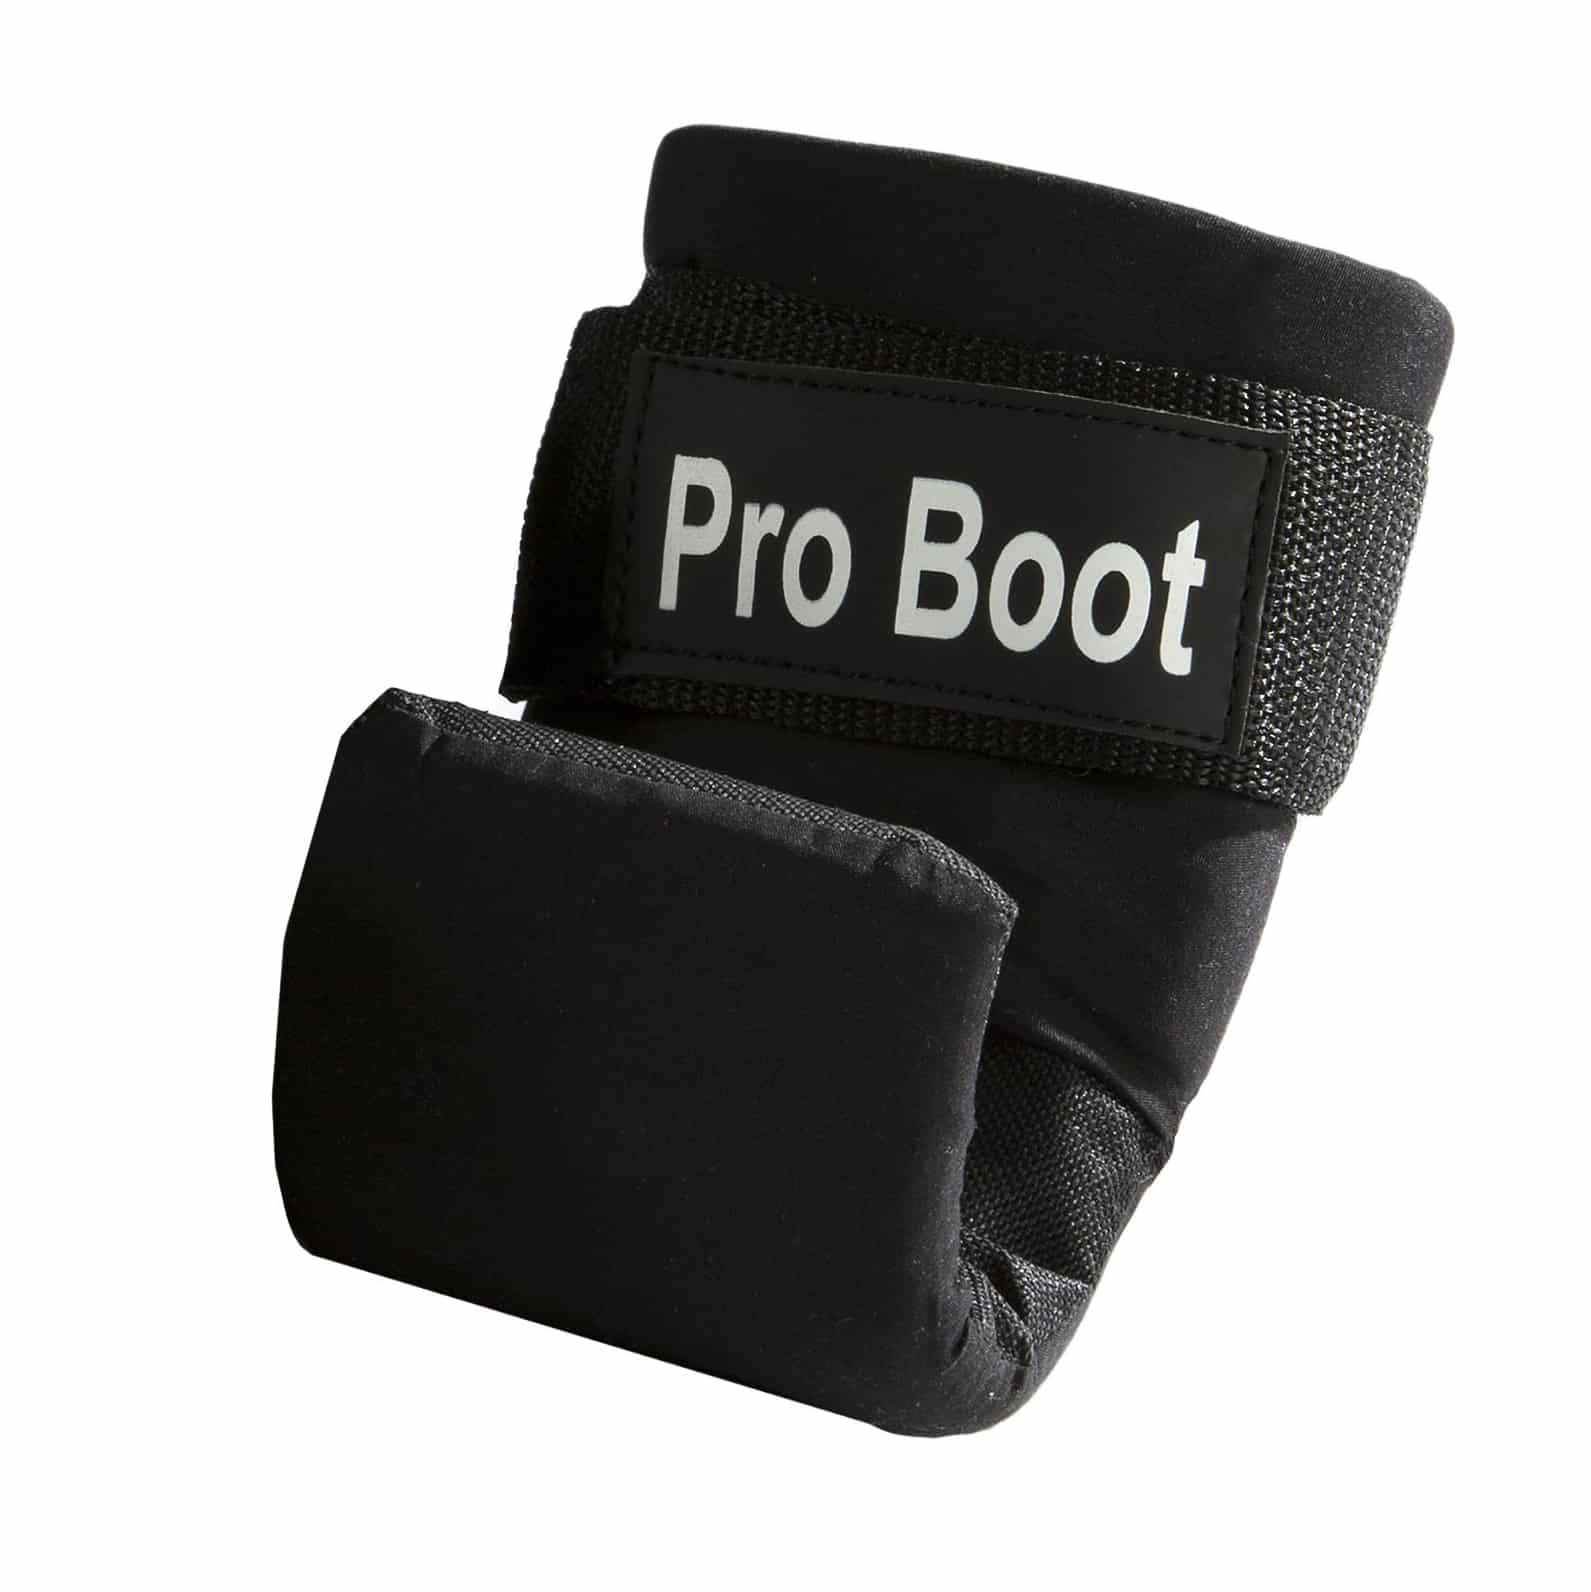 Best Gravity Boots Reviewed - Top 5 in 2021